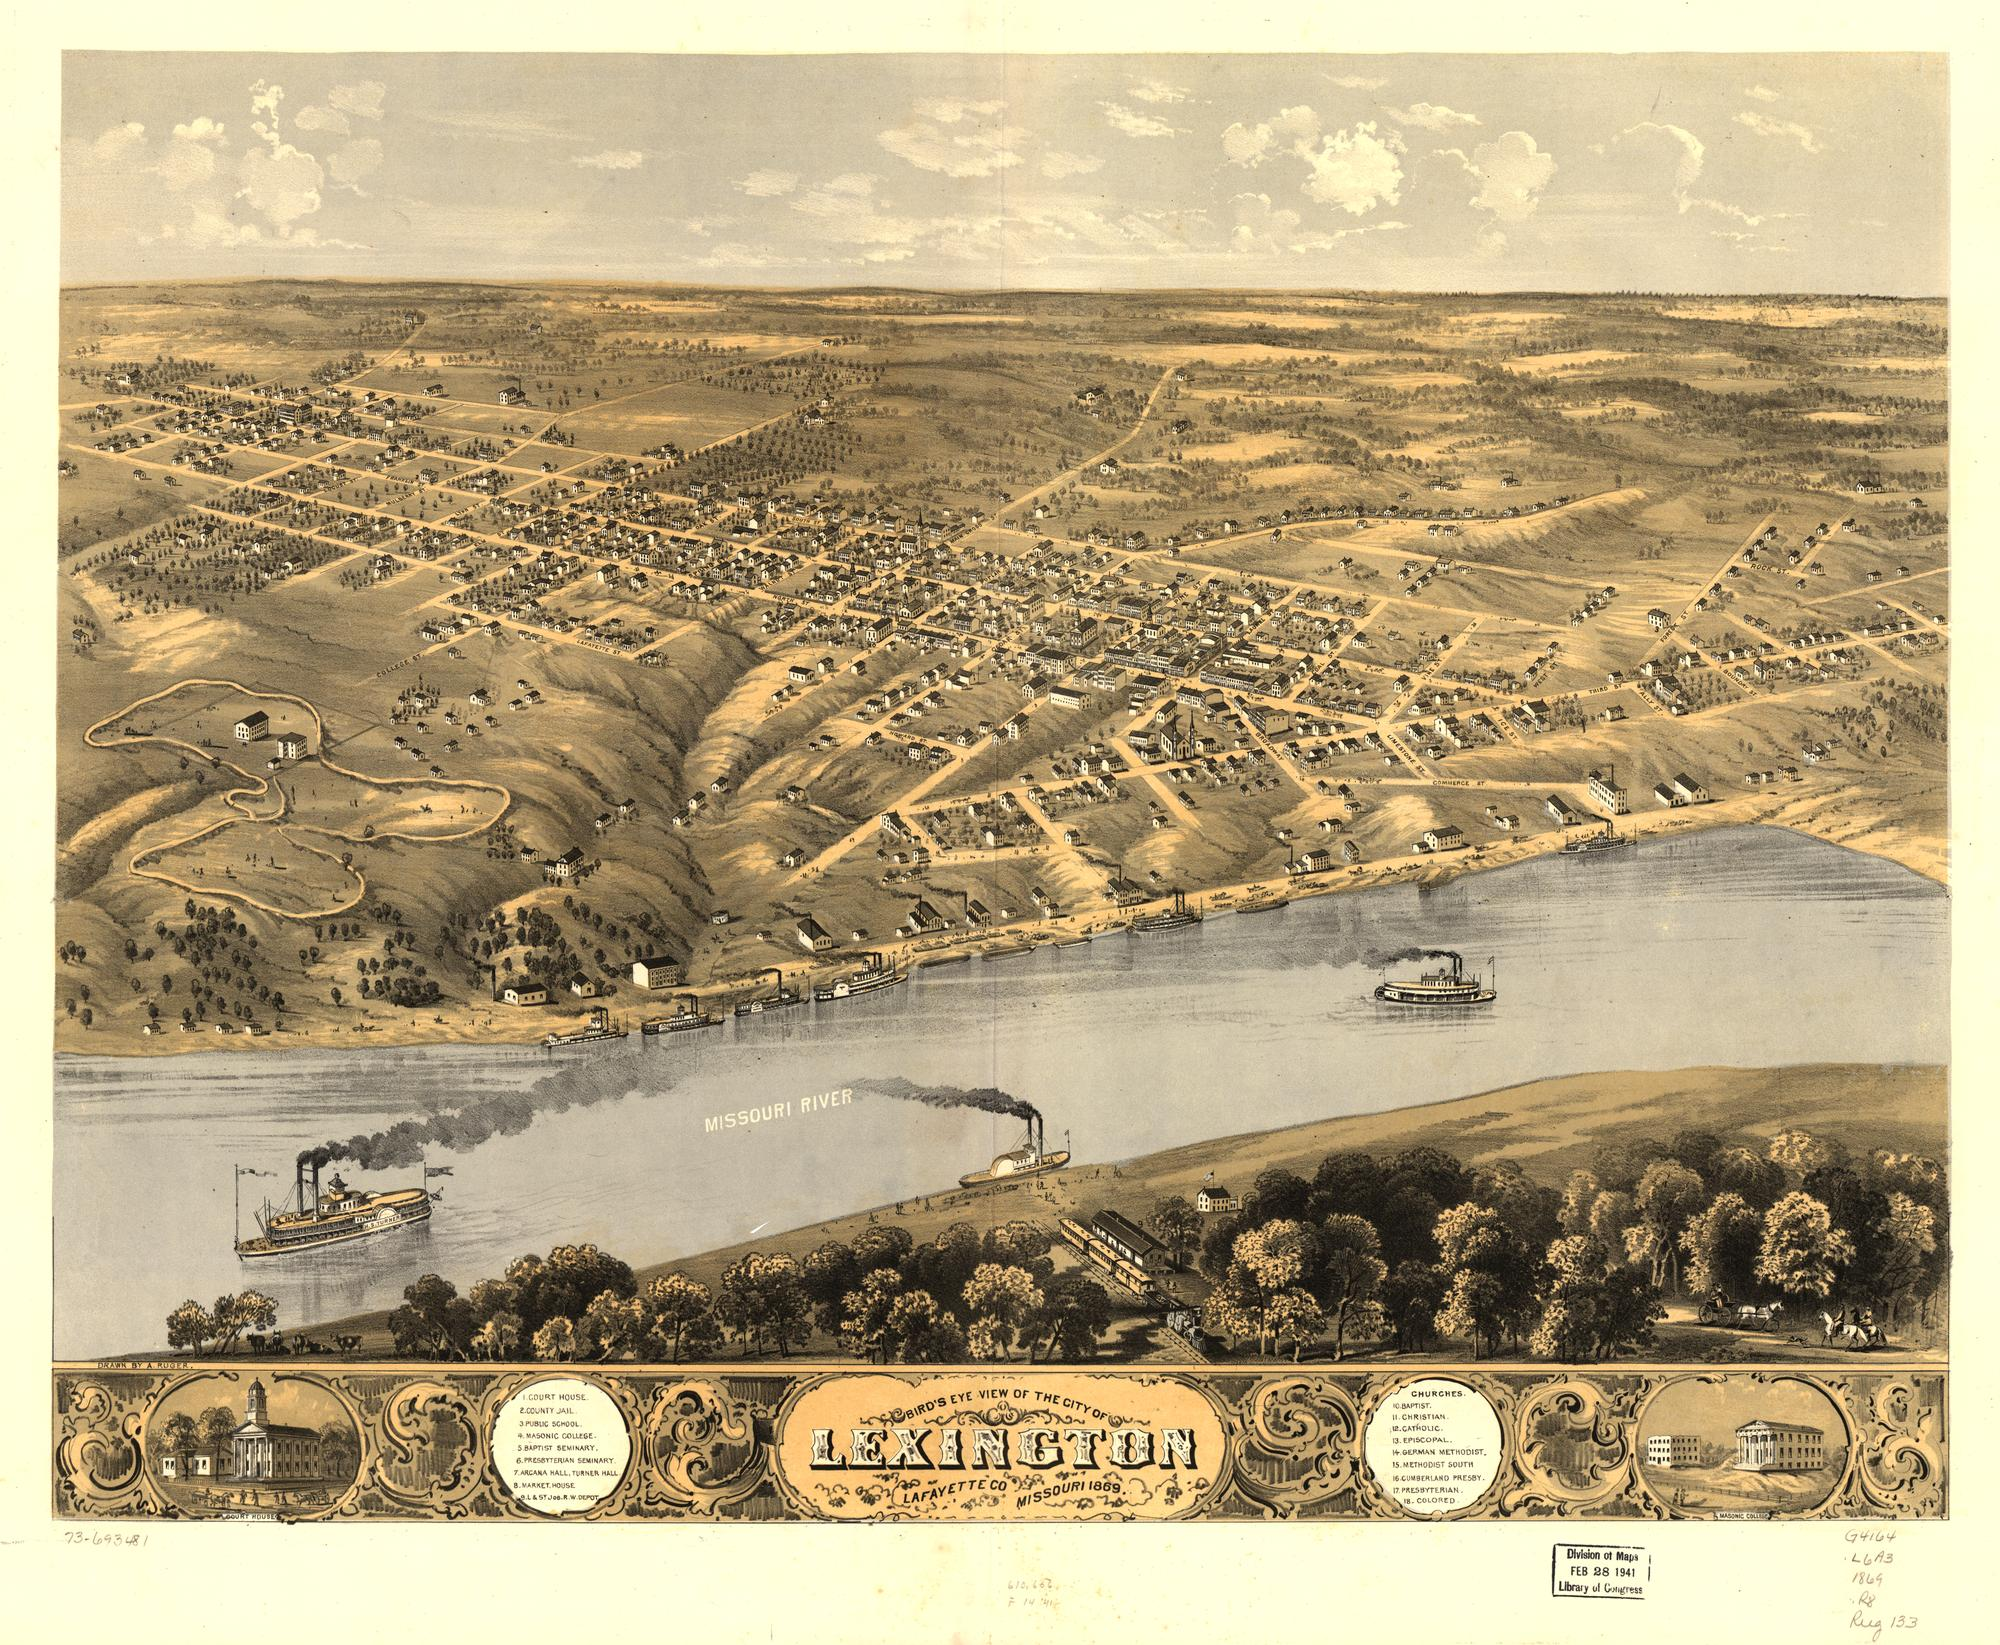 An artist's aerial view of Lexington only a few years after the war. Lexington was Missouri's fourth largest city at the time.